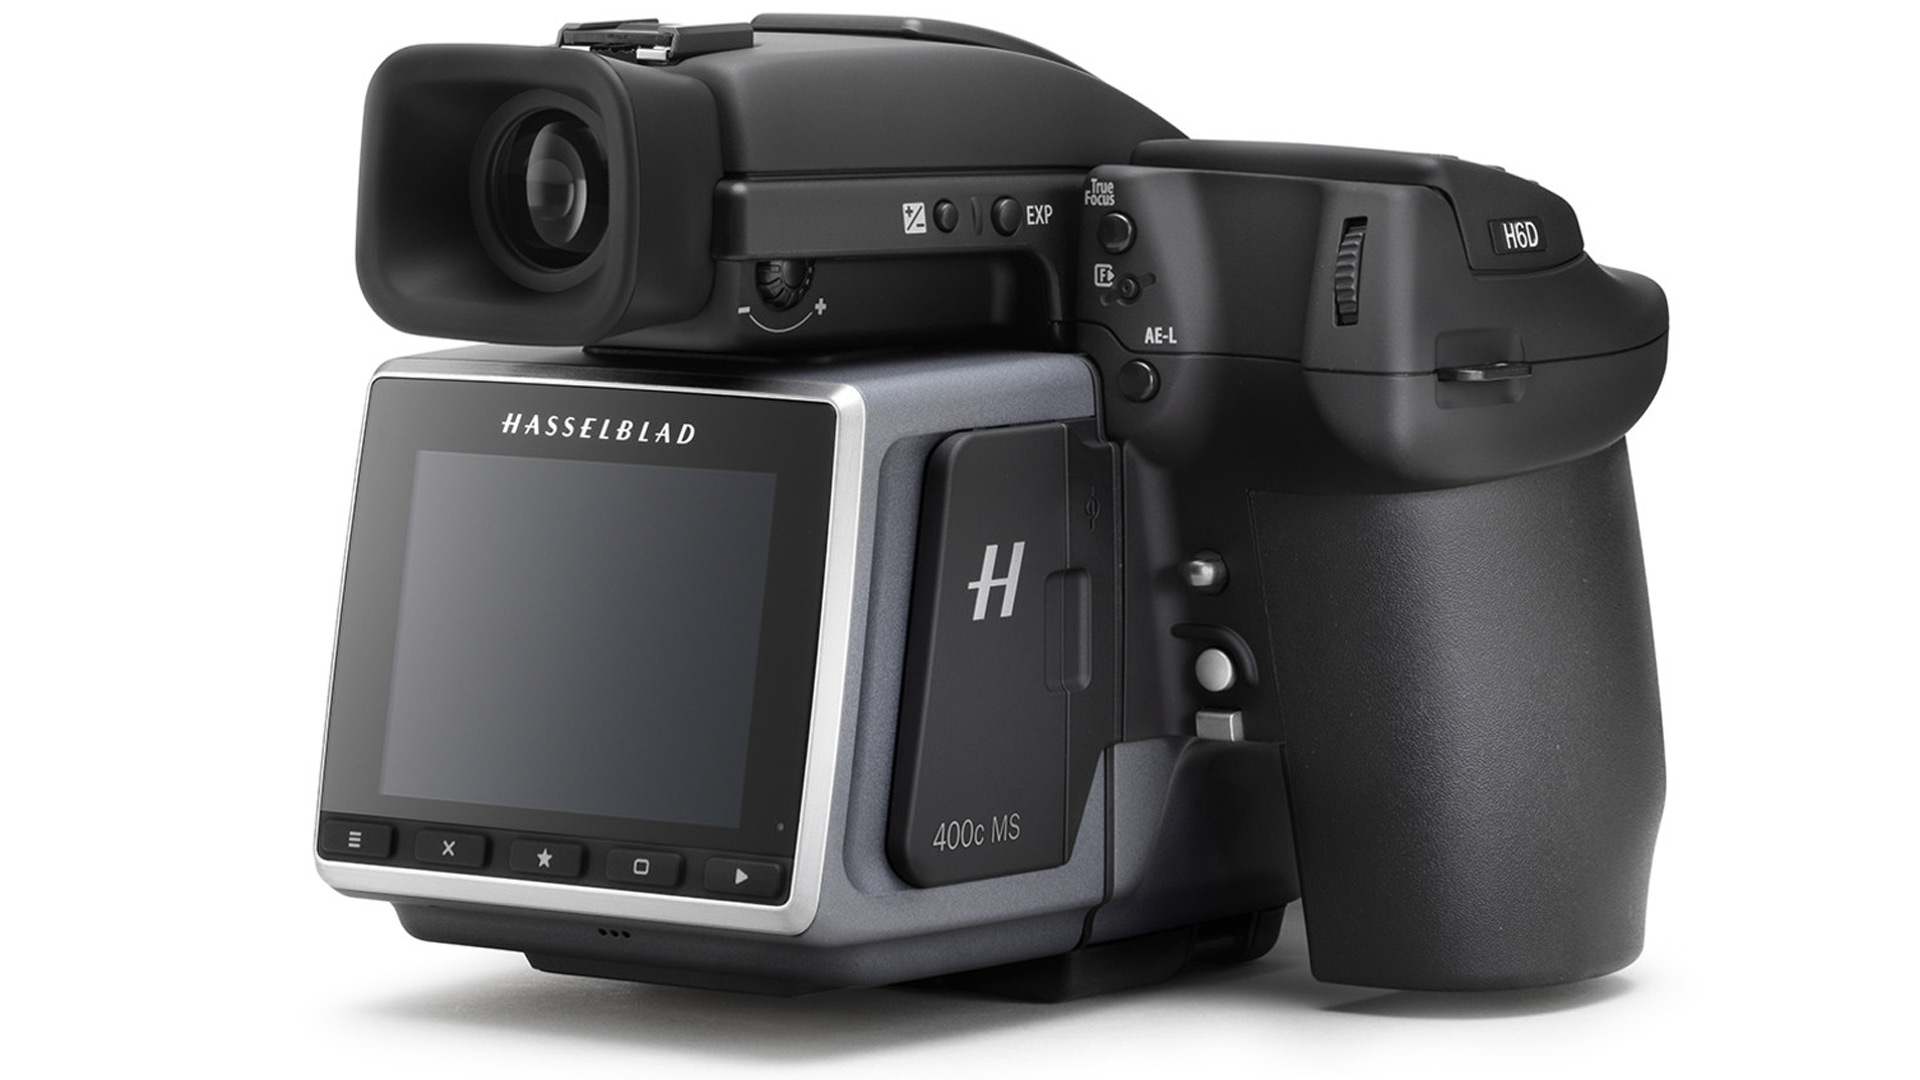 Hasselblad launches an insane camera that captures up to 2.4GB 400MP images